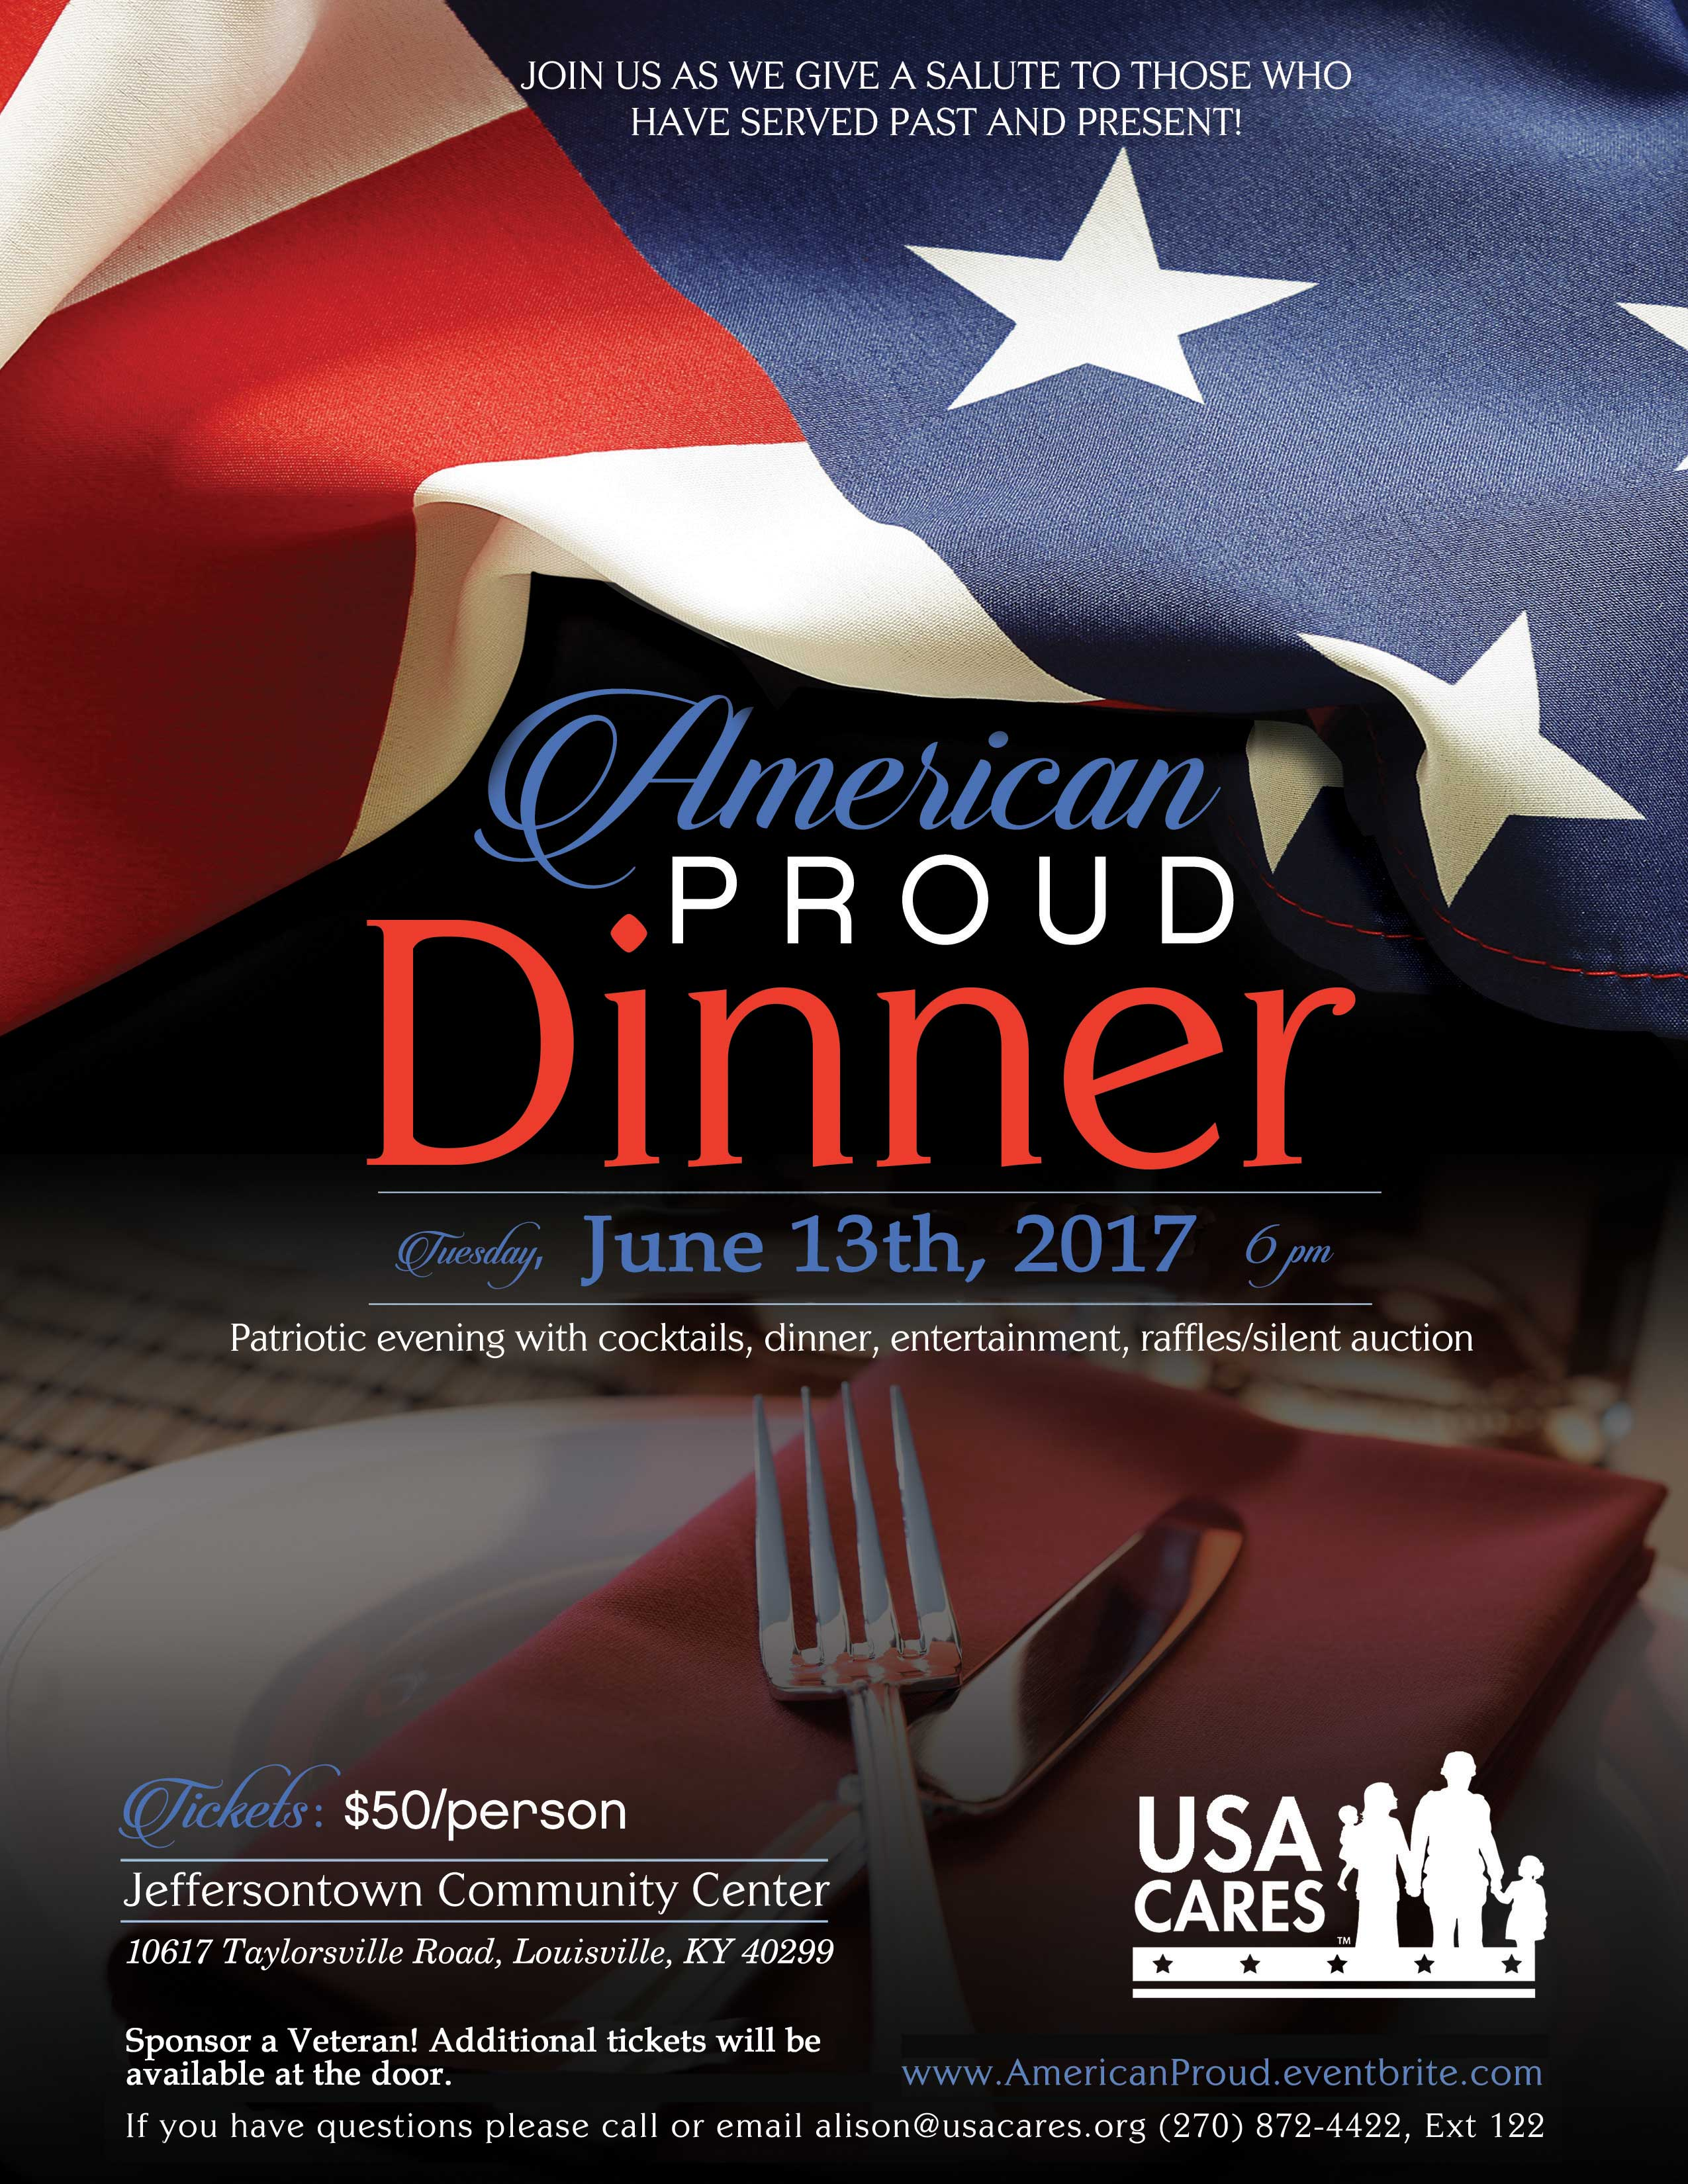 american proud event poster - june 13, 2017. for details, contact alison@usacares.org